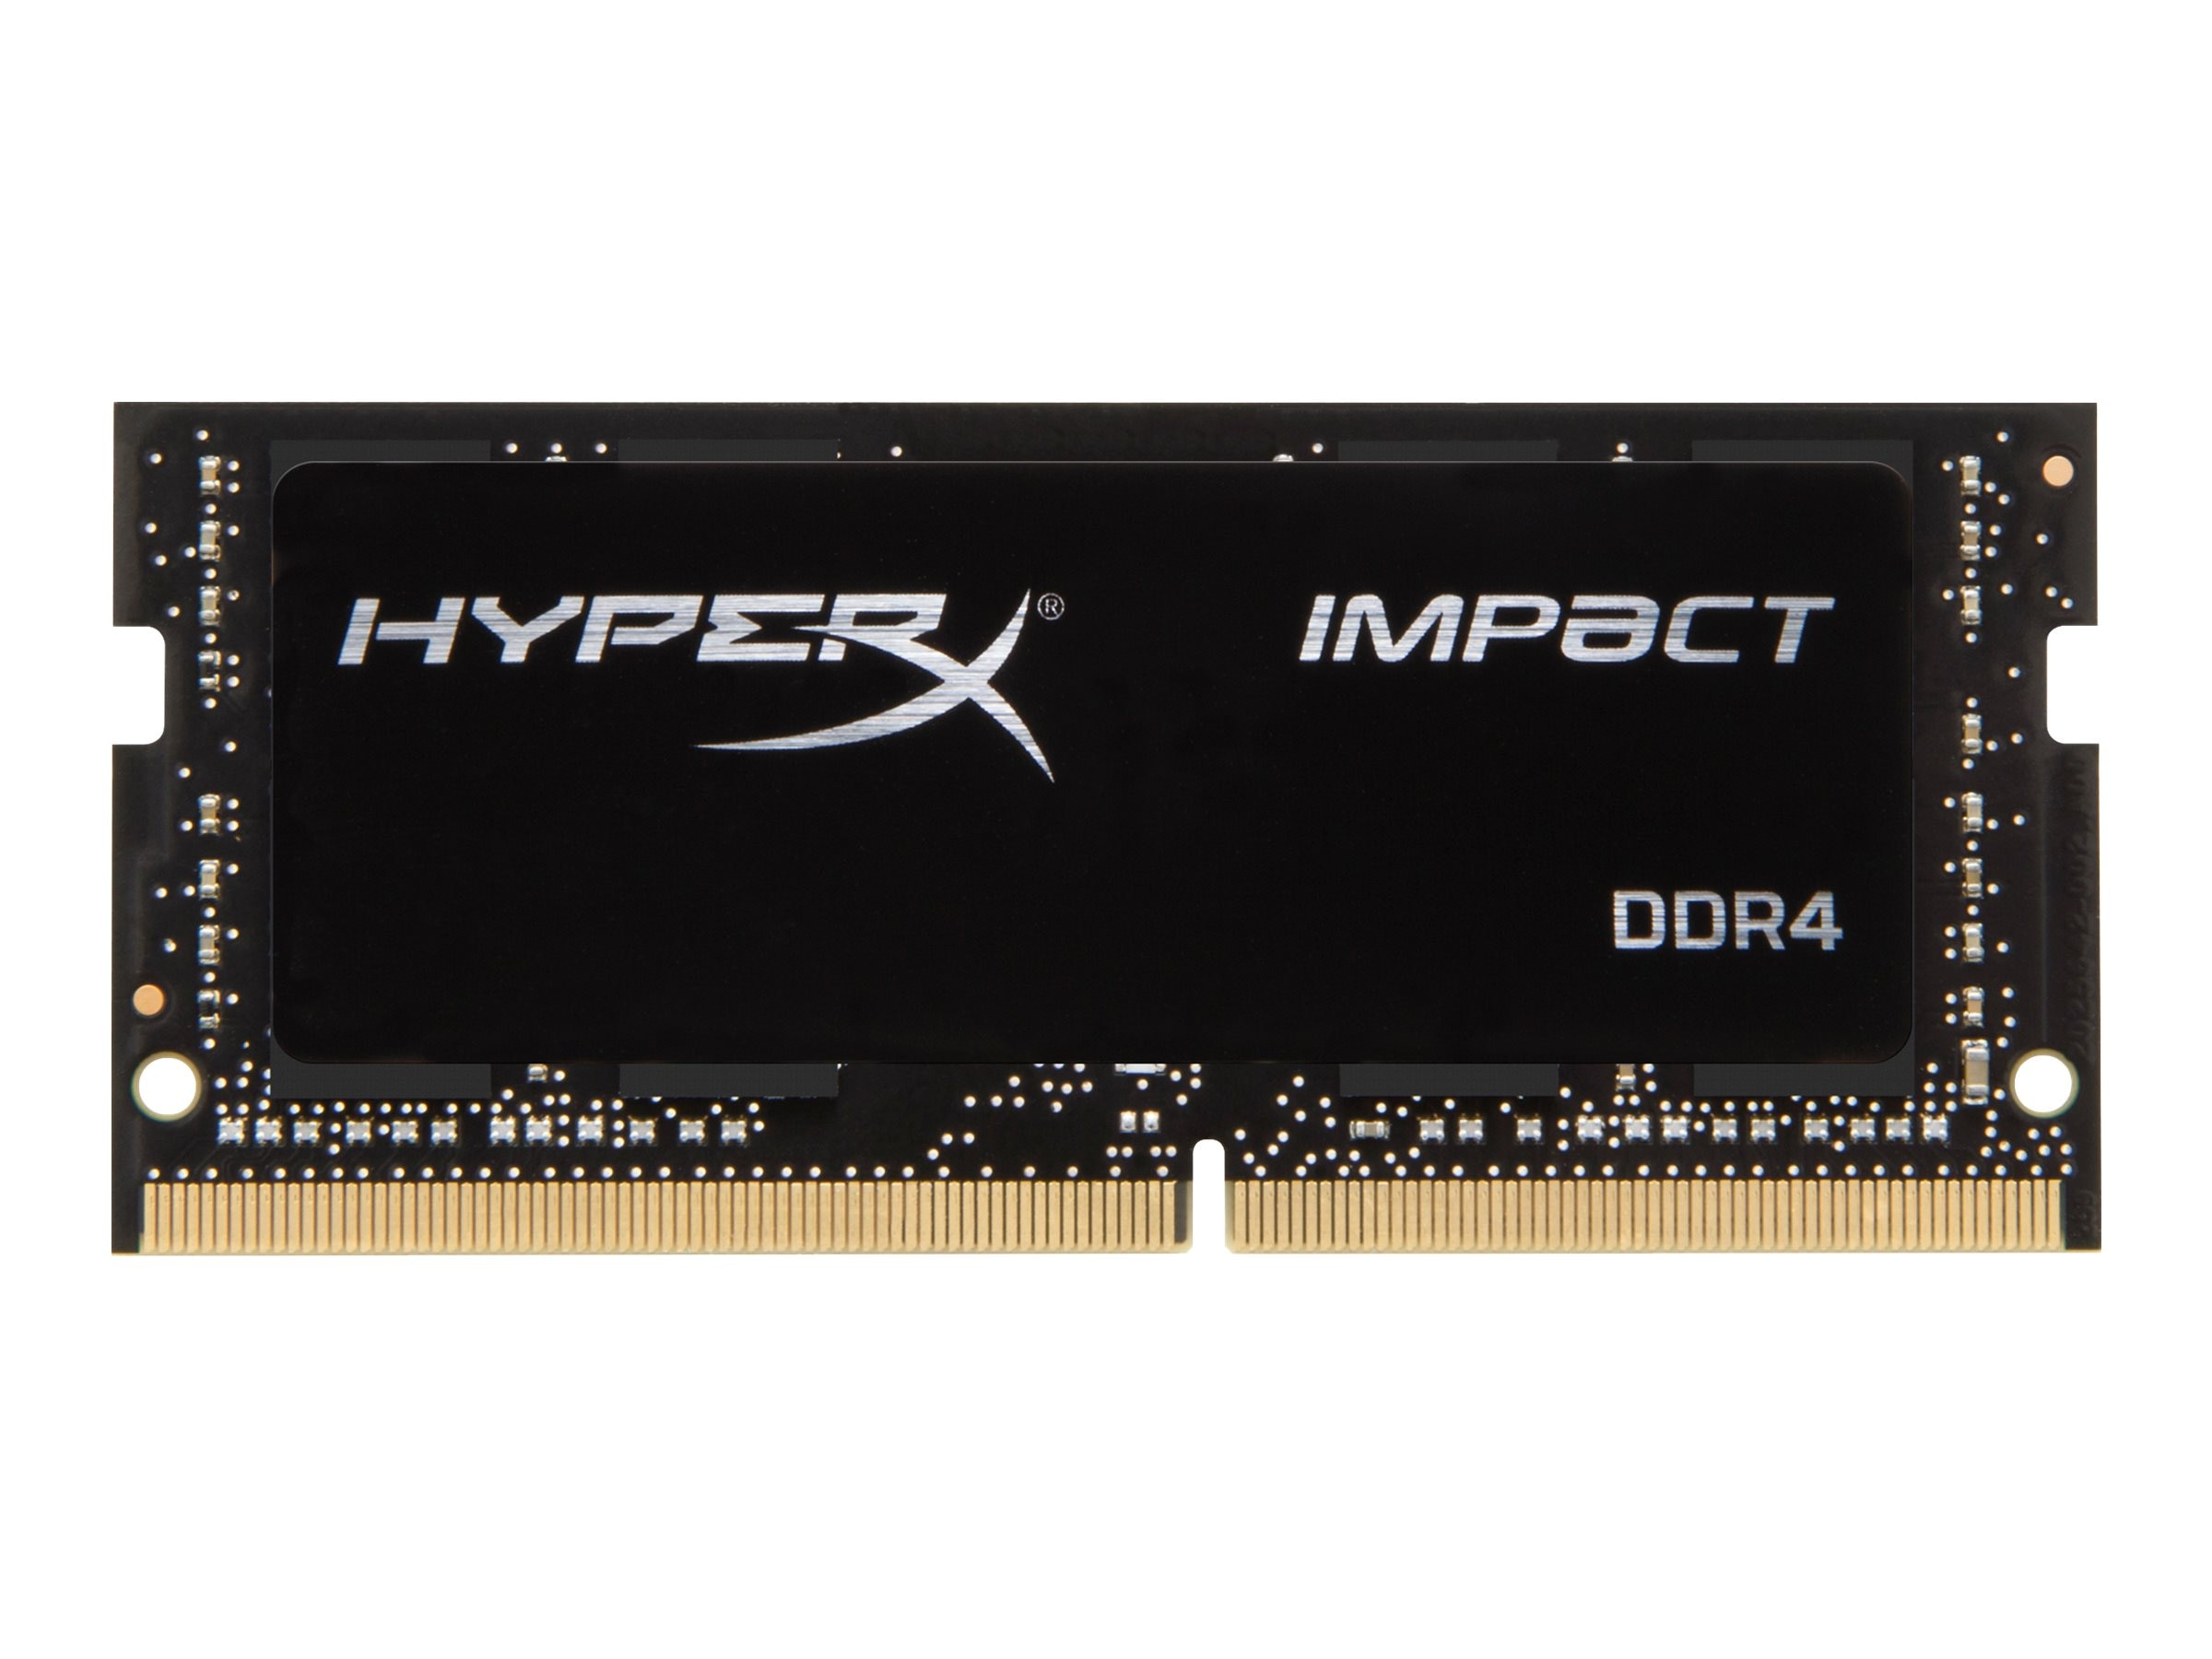 Kingston 16GB PC4-17000 260-pin DDR4 SDRAM SODIMM Kit